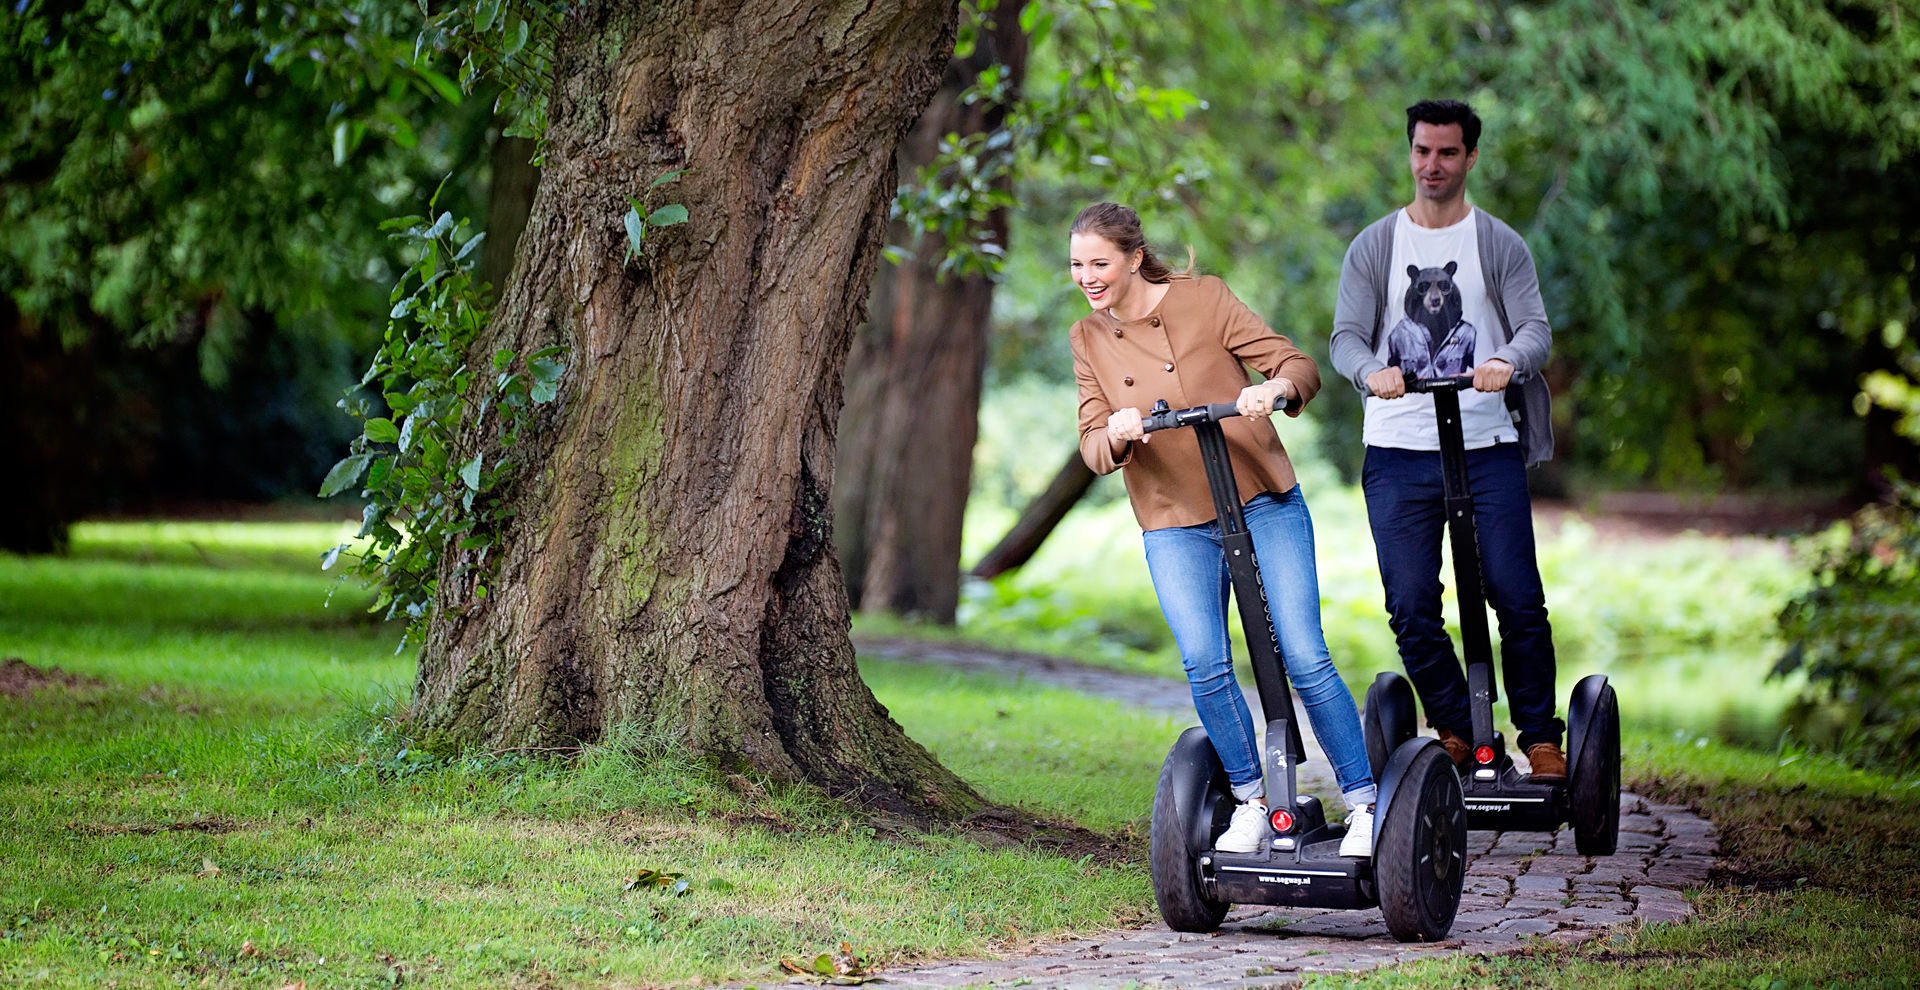 Segway-home-leisure